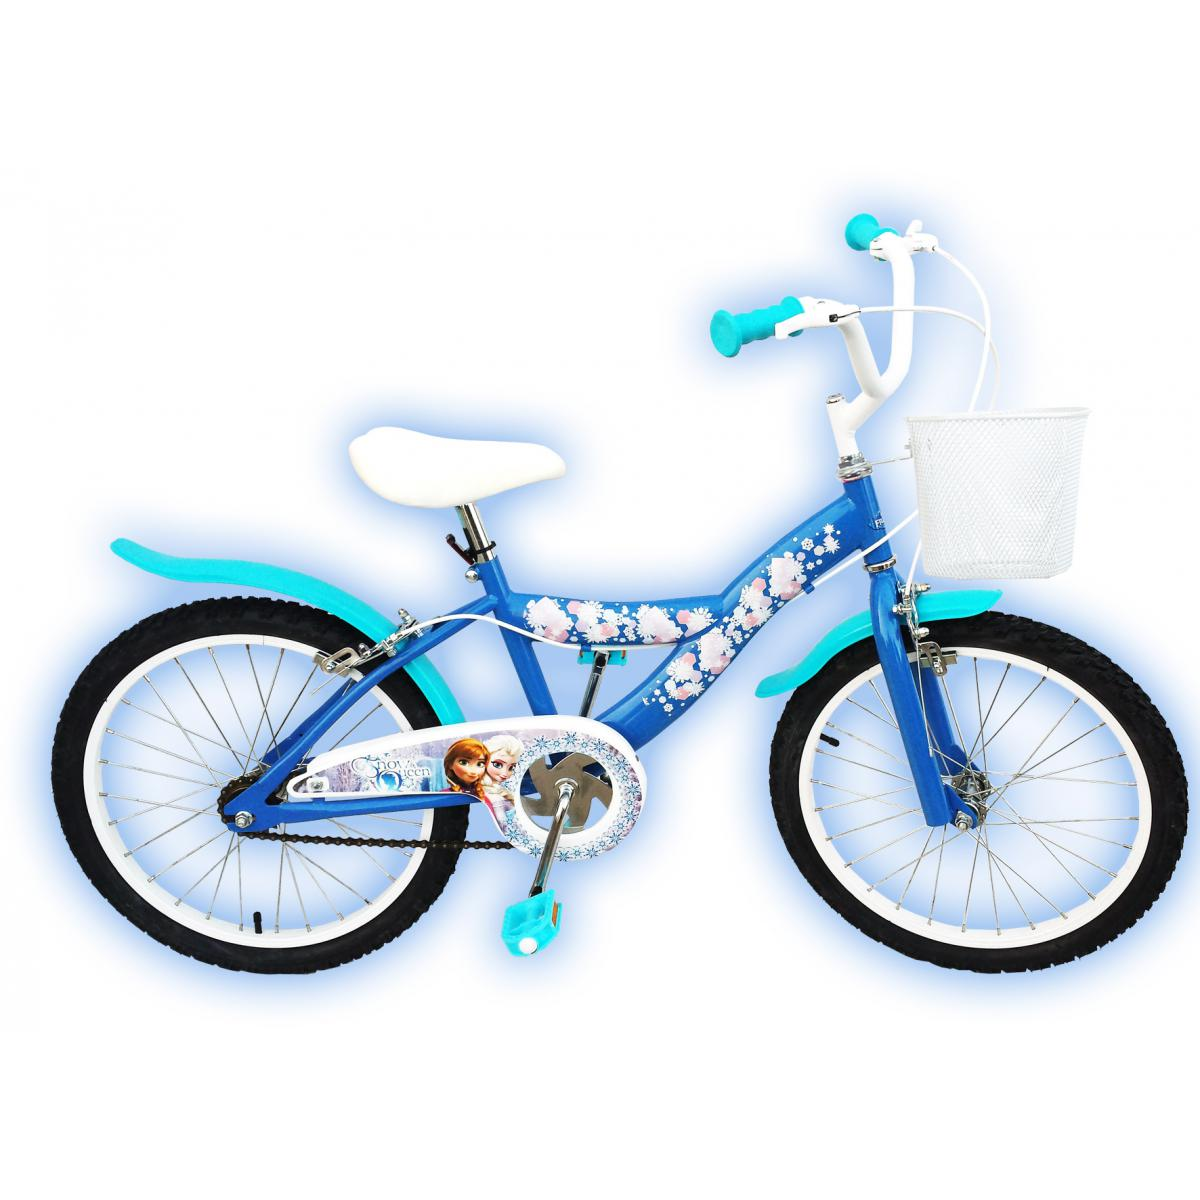 kinderfahrrad disney frozen die eisk nigin 12 14 16 20 zoll m dchen fahrrad ebay. Black Bedroom Furniture Sets. Home Design Ideas